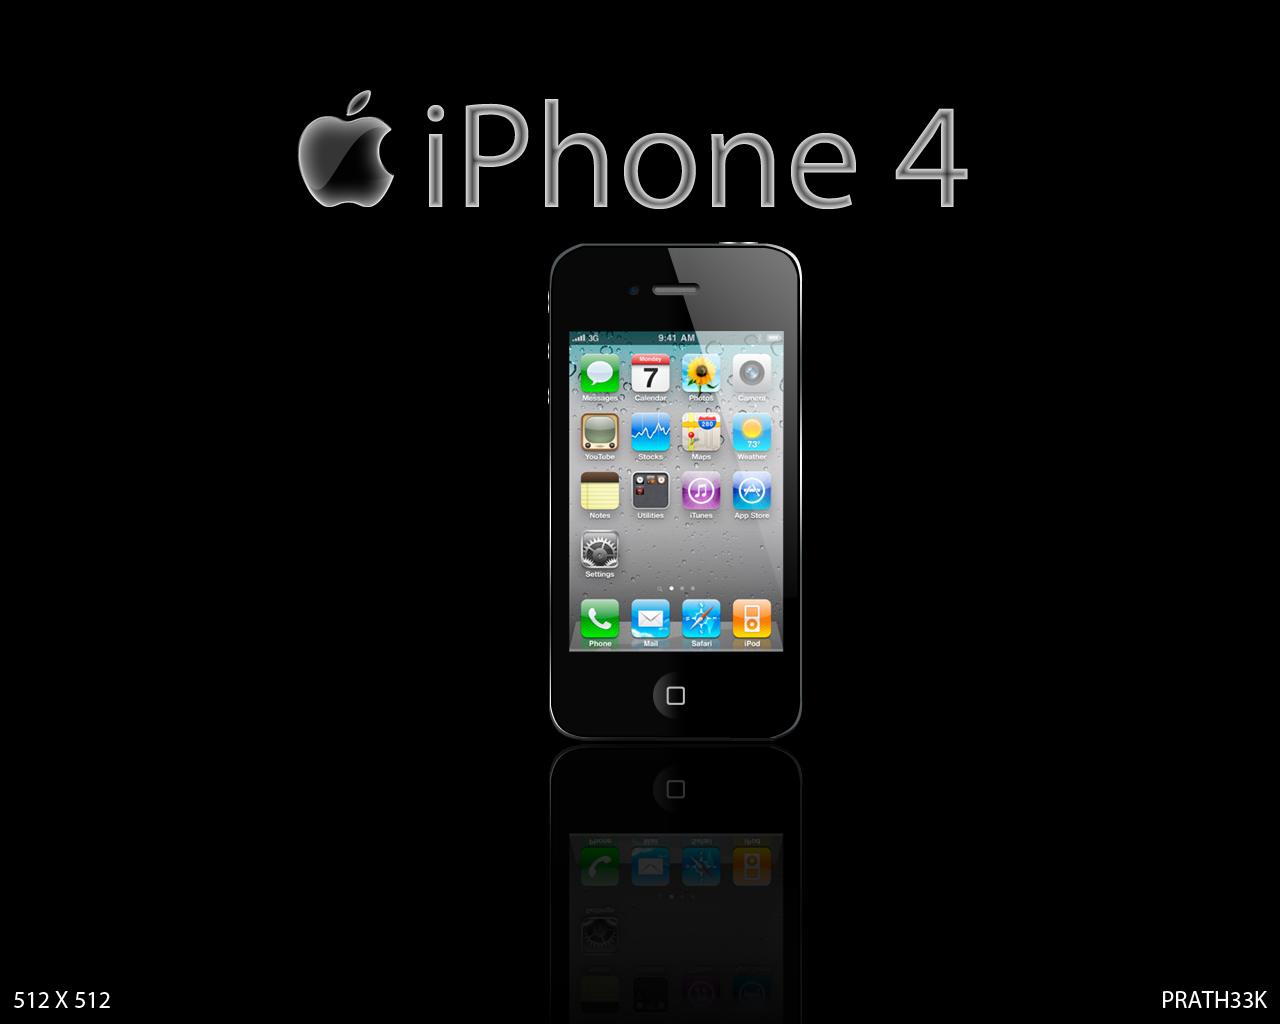 My Icons On iPhone 4